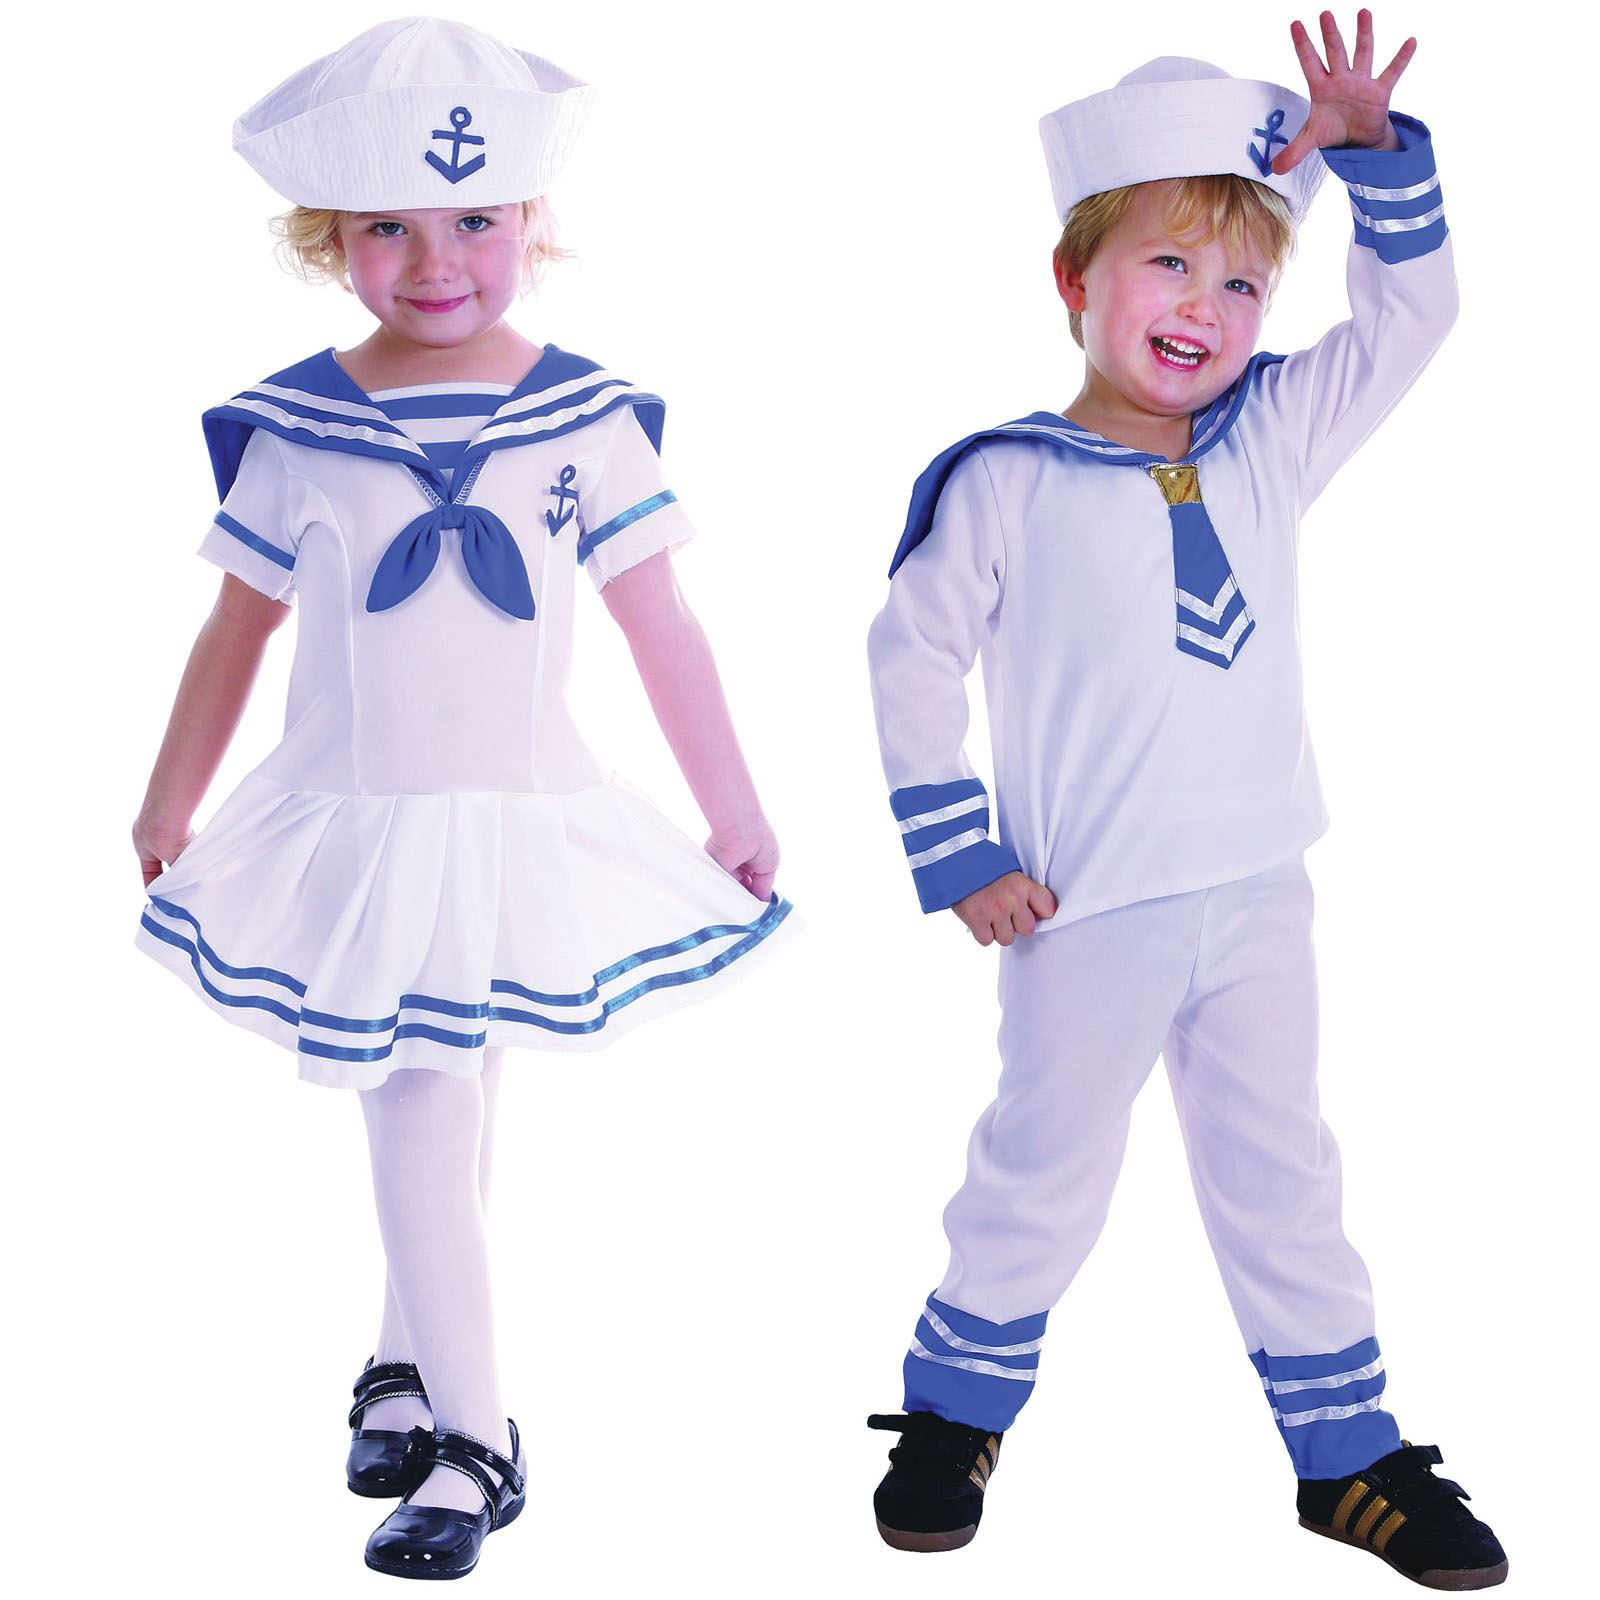 Kids Marine Costume Sea Creature Costumes Sc 1 St Brands On Sale